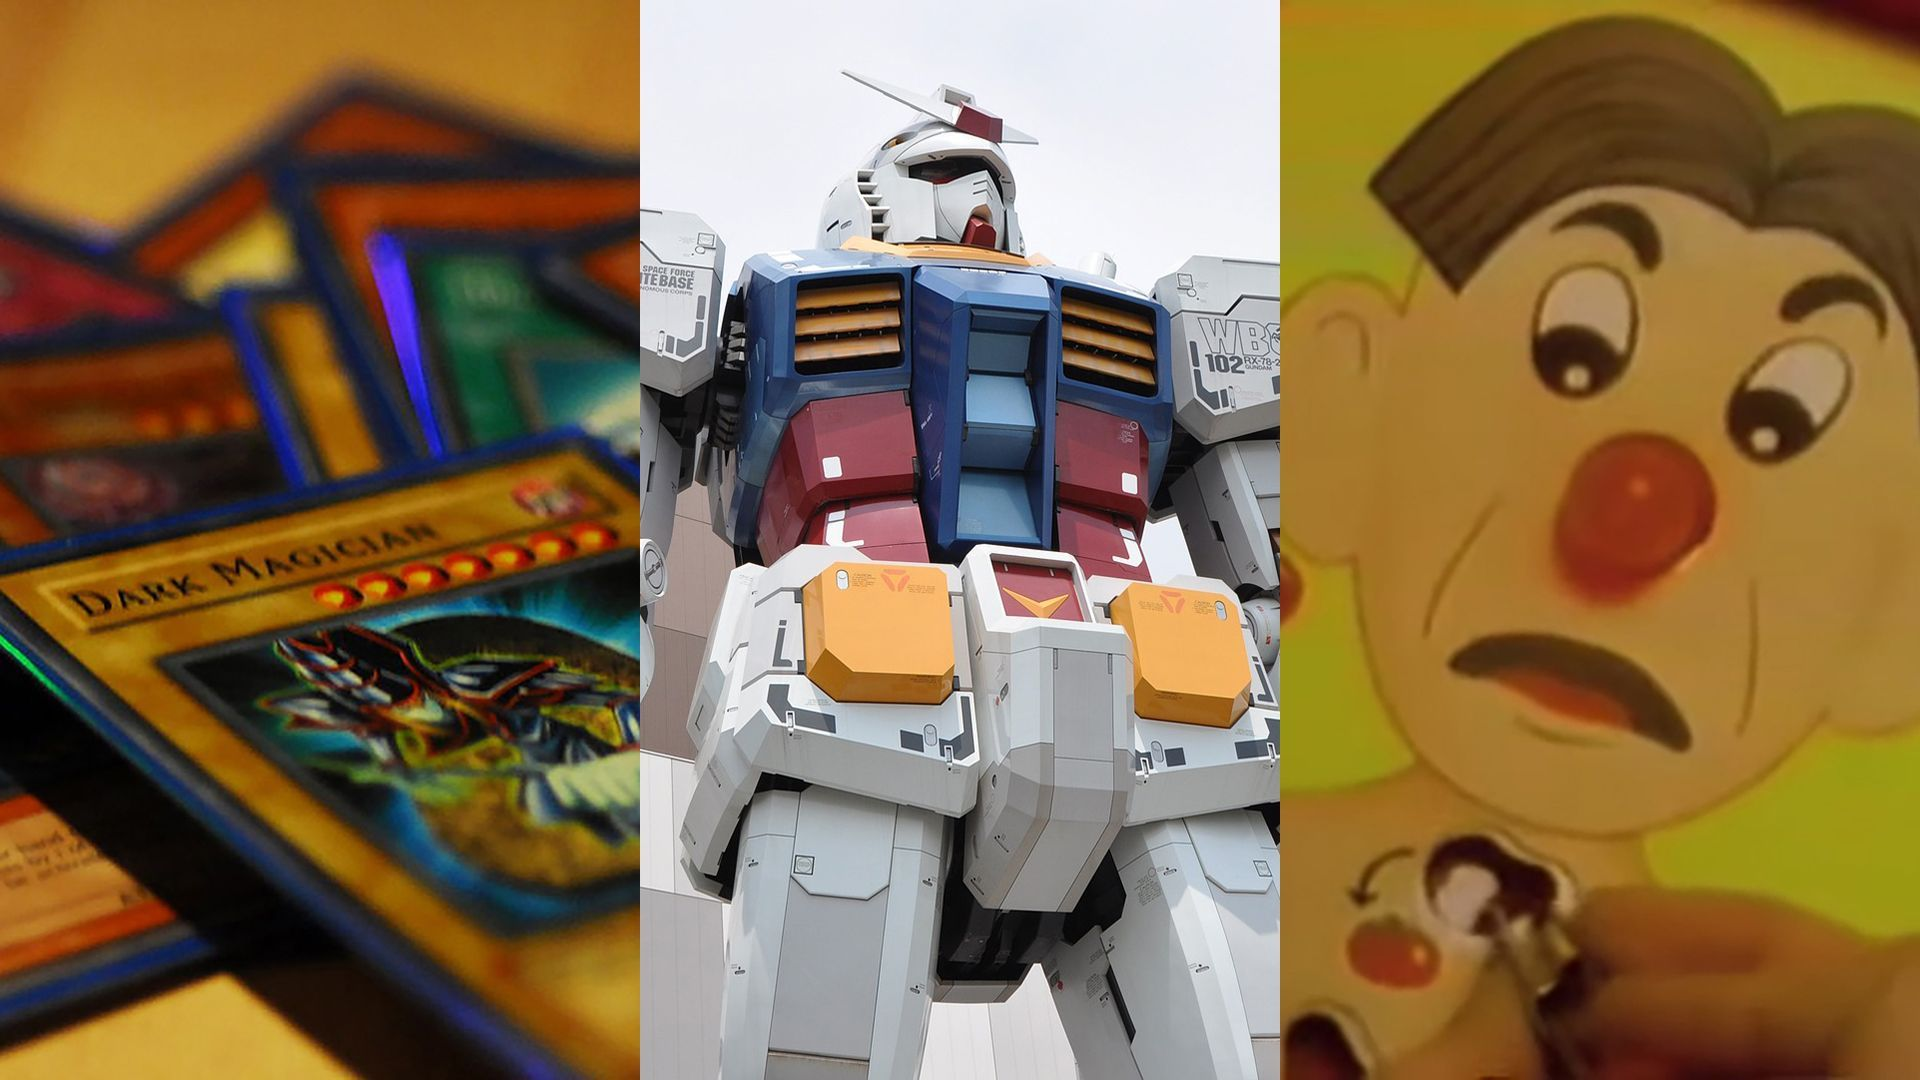 Howstuffworks: Can You Identify These Popular Childhood Toys